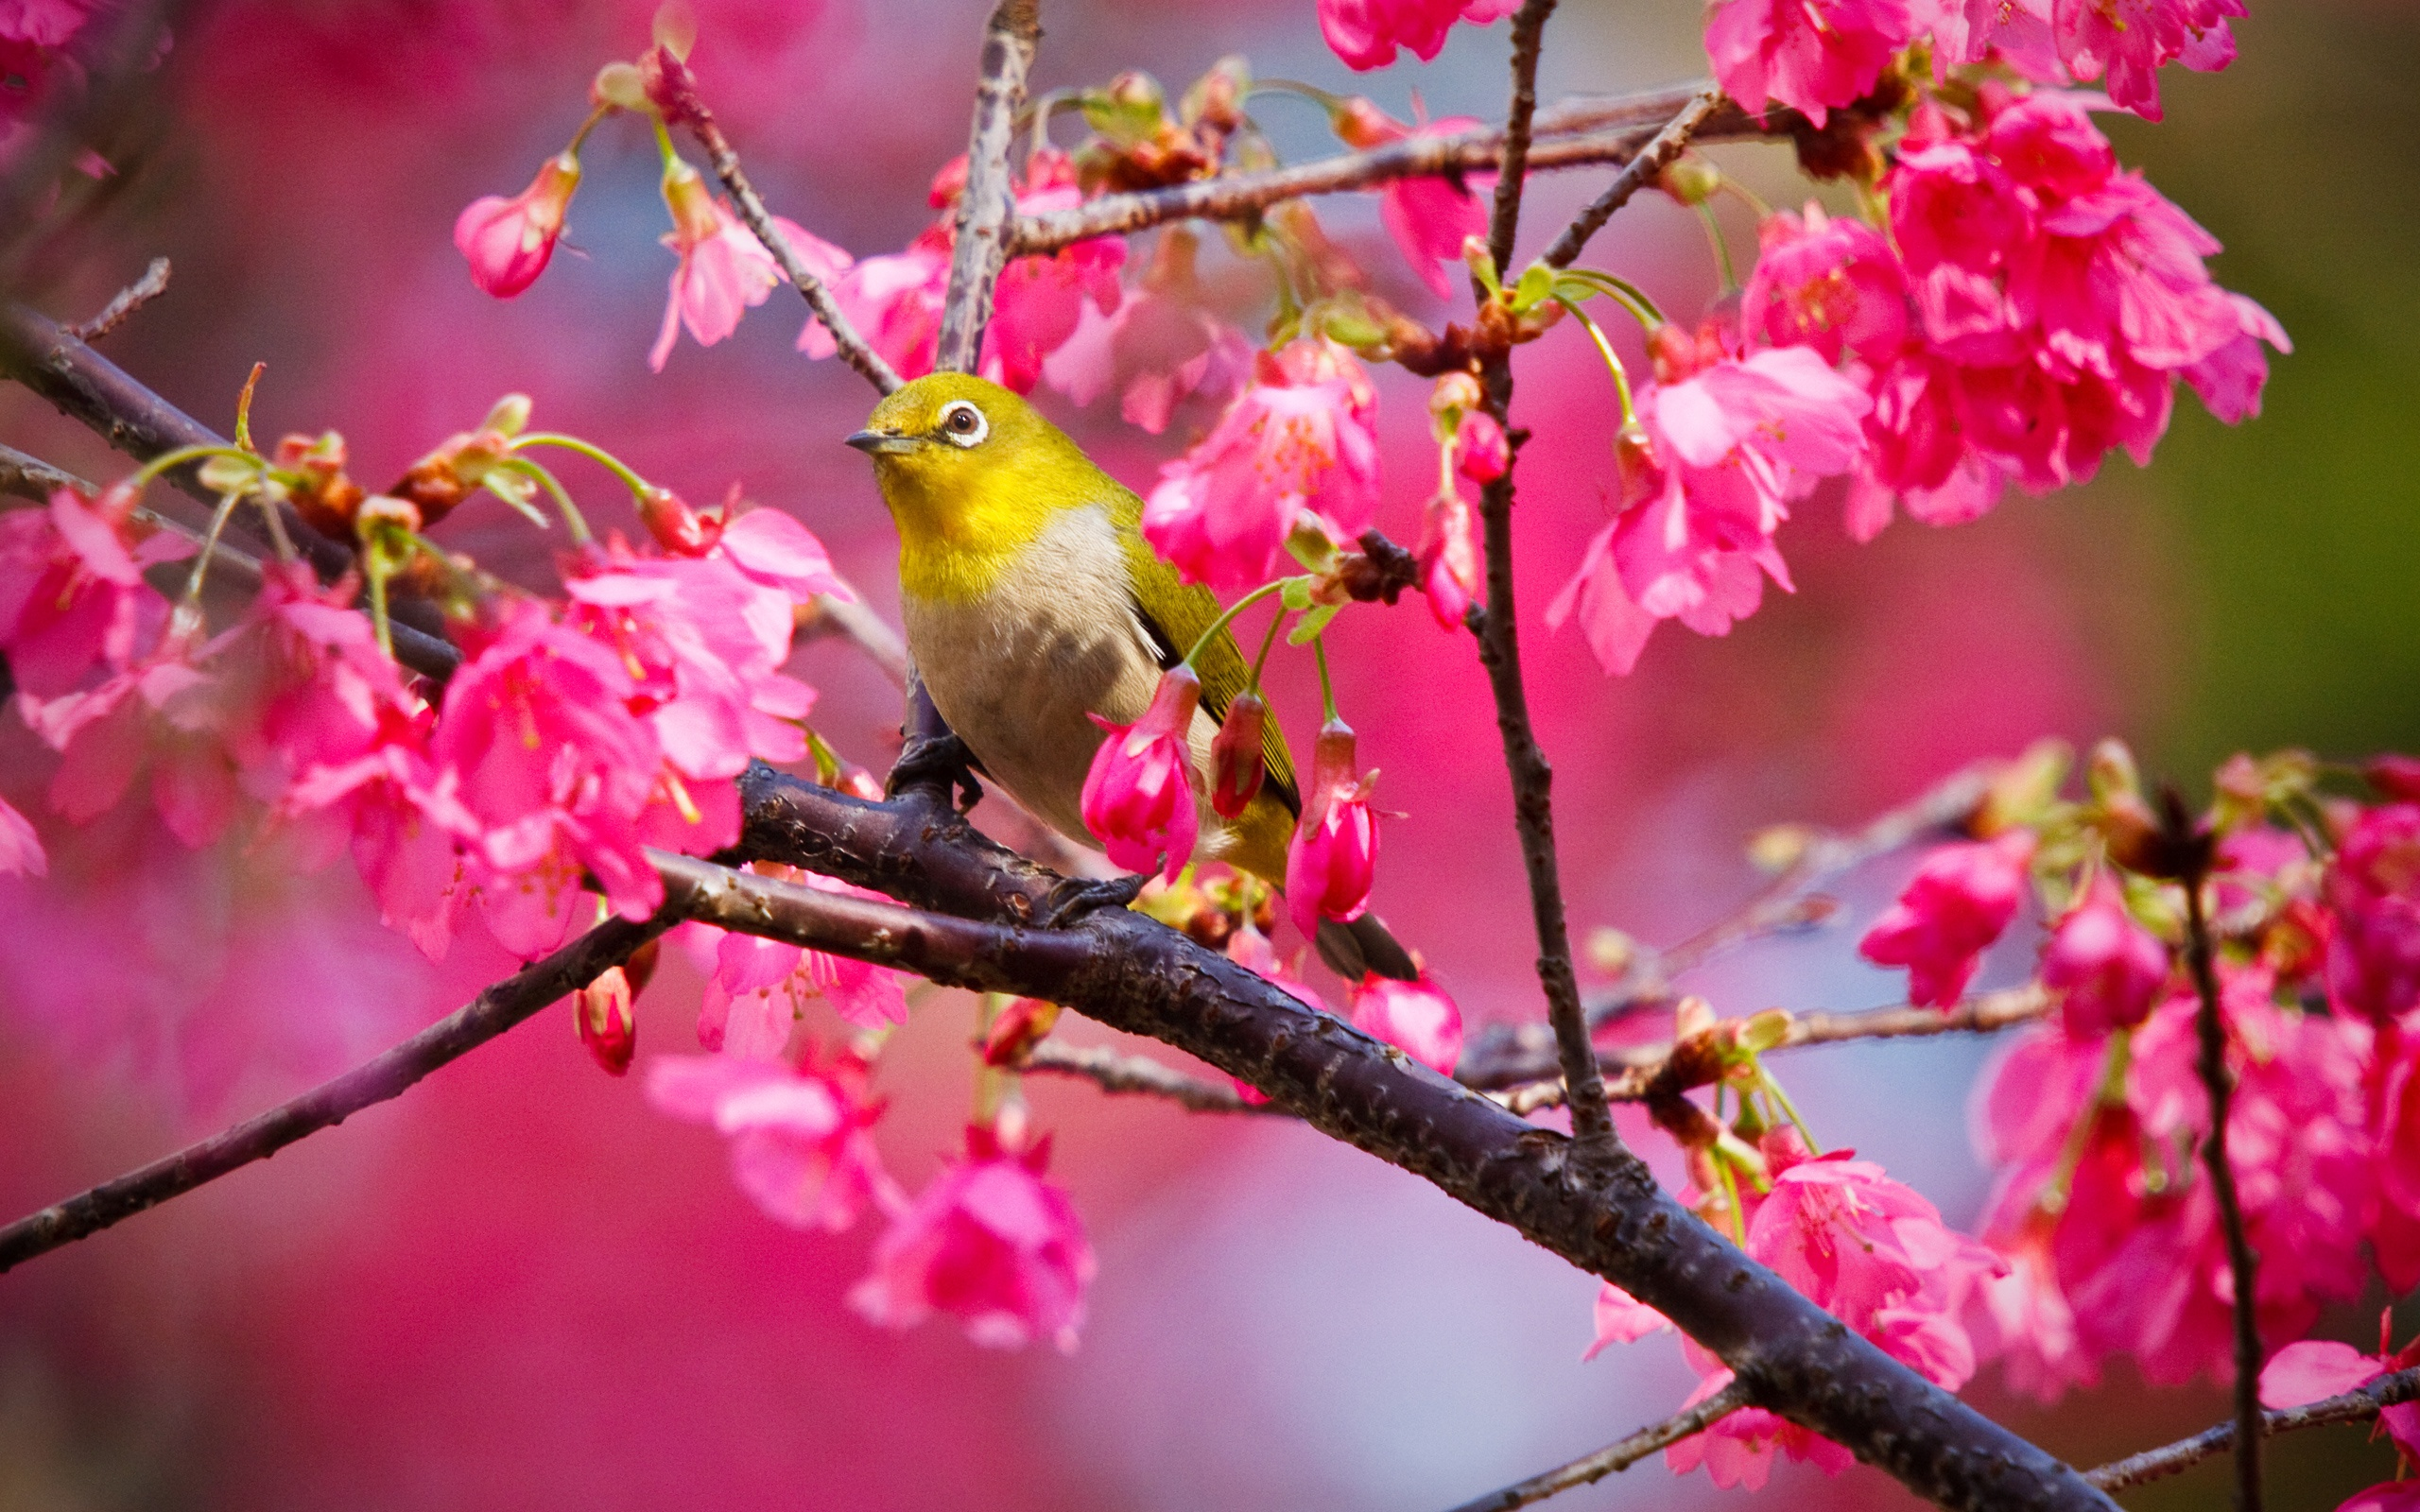 Mountain Cherry Bird Wallpapers In Jpg Format For Free Download